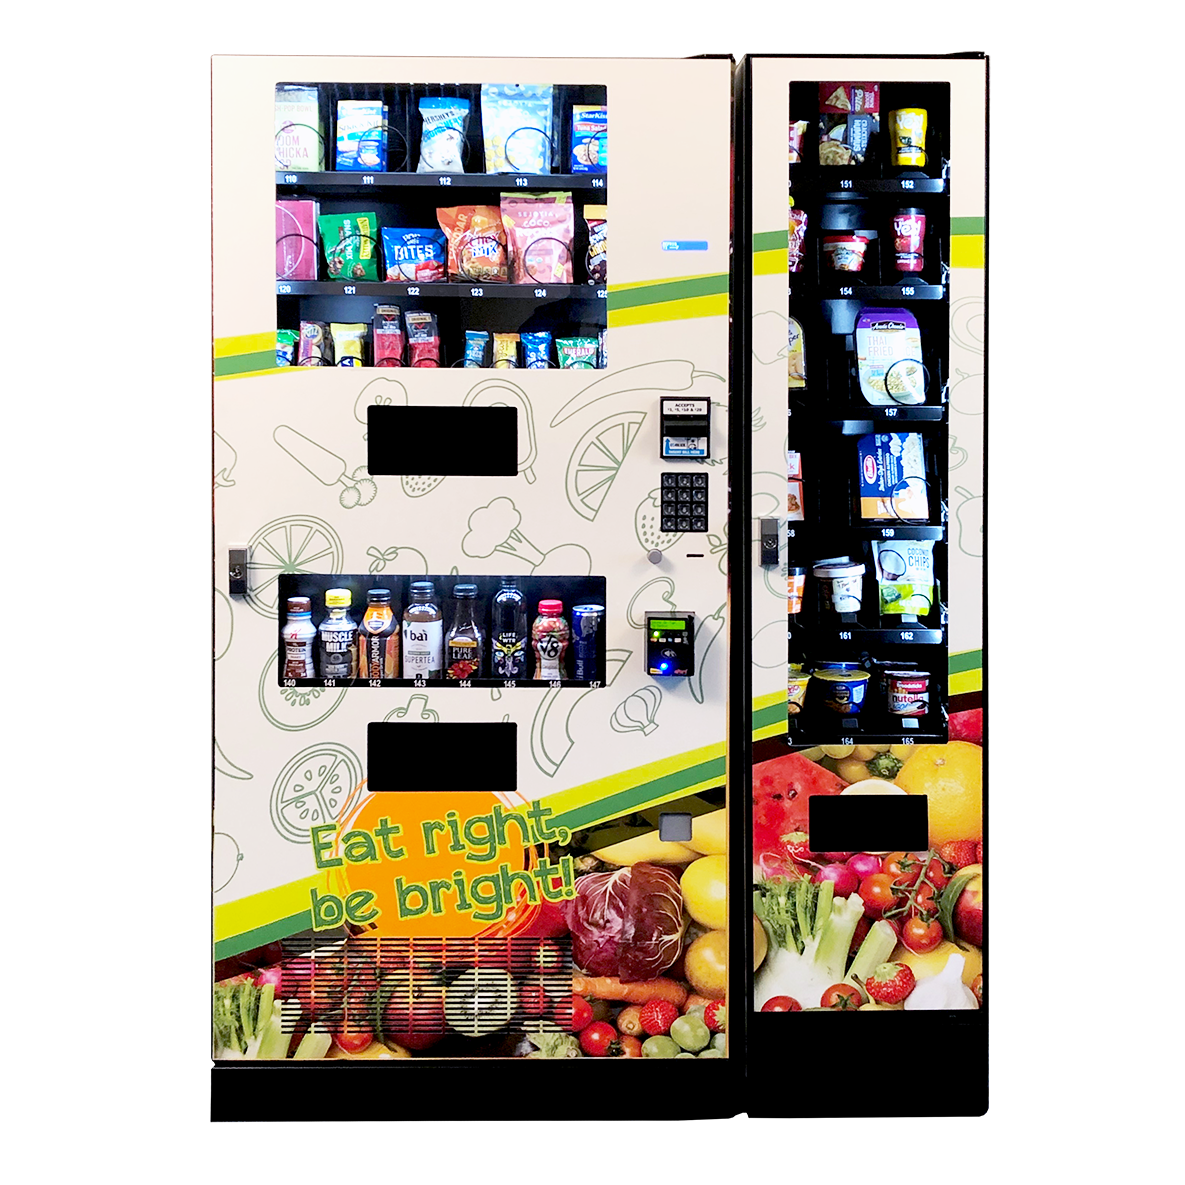 Seaga Healthy Combo Snack and Drink Vending Machine with Entree